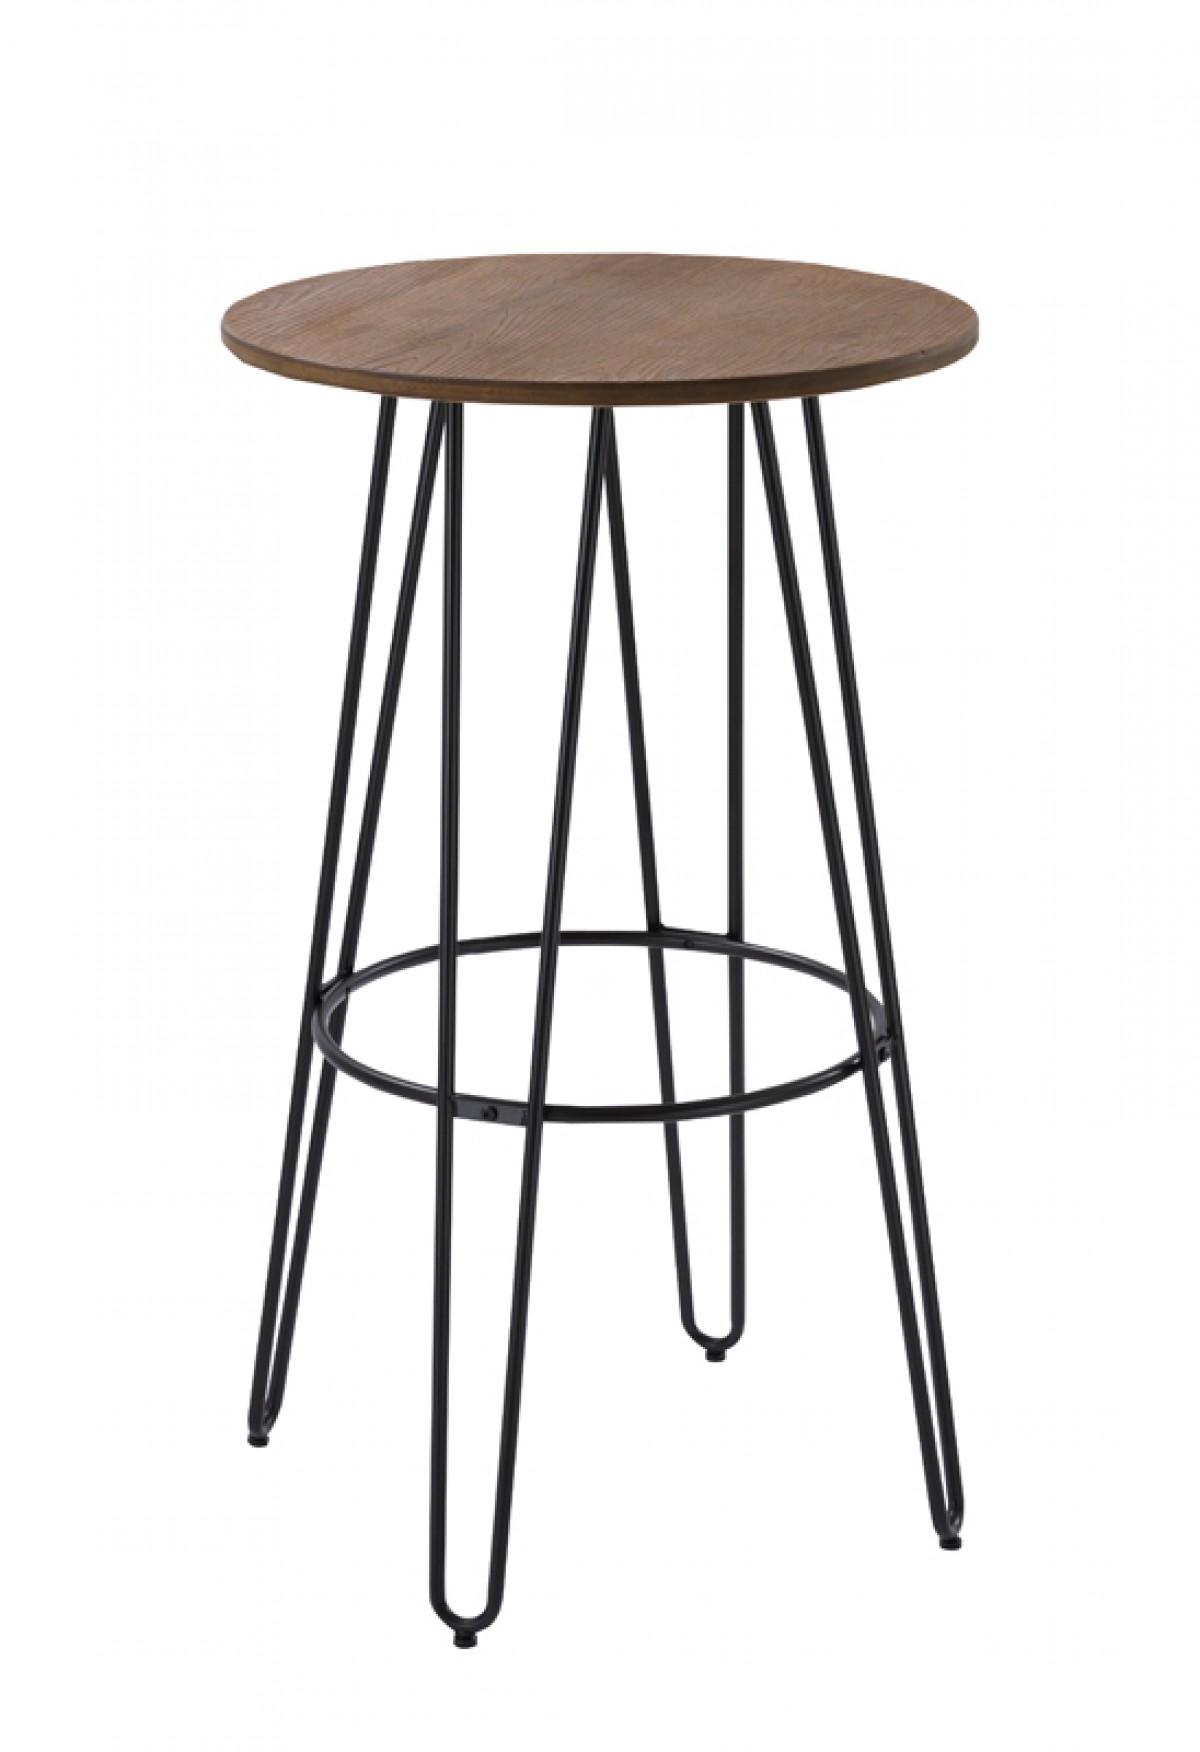 Modrest Gelson Modern Round Bamboo Top Bar Table Dining Room Clearance